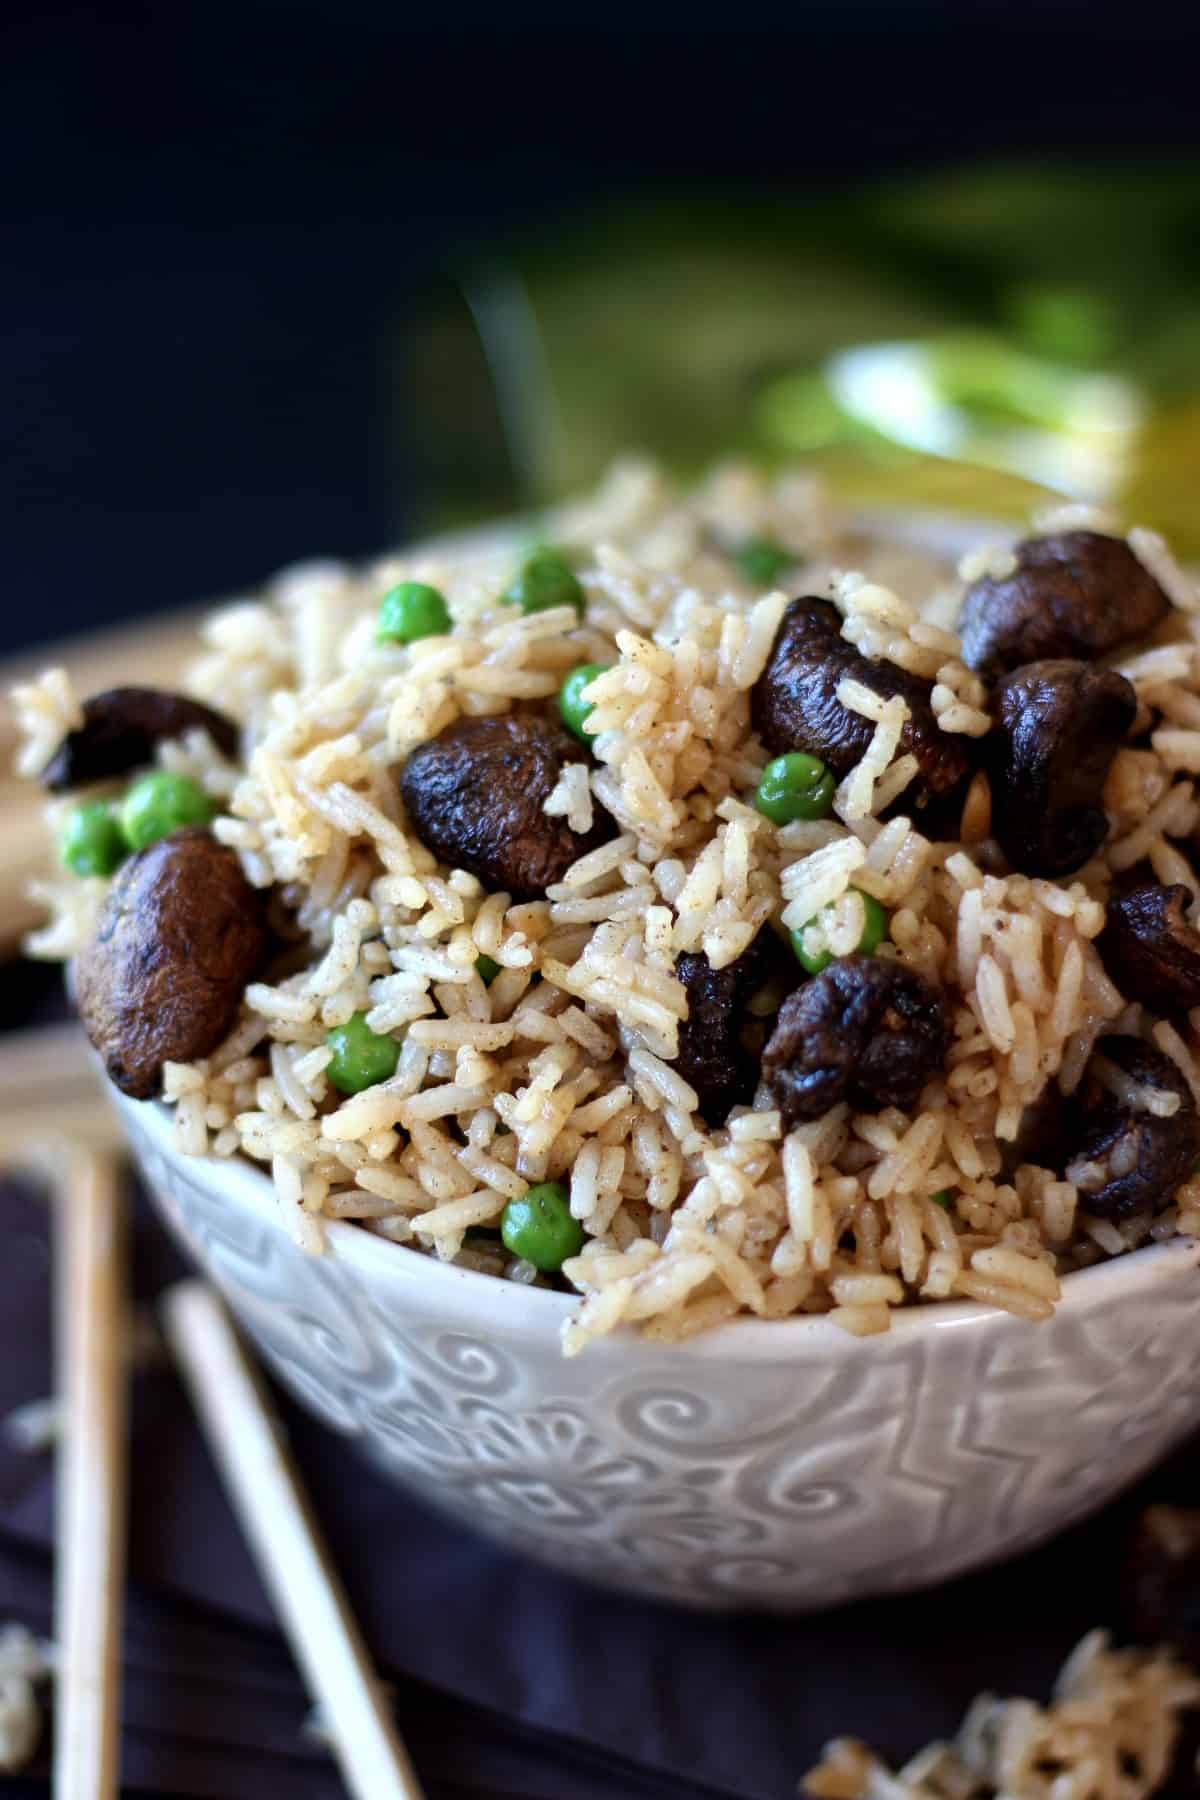 Close-up of sticky rice with mushrooms and peas filling a patterned ivory bowl with chopsticks on the side.